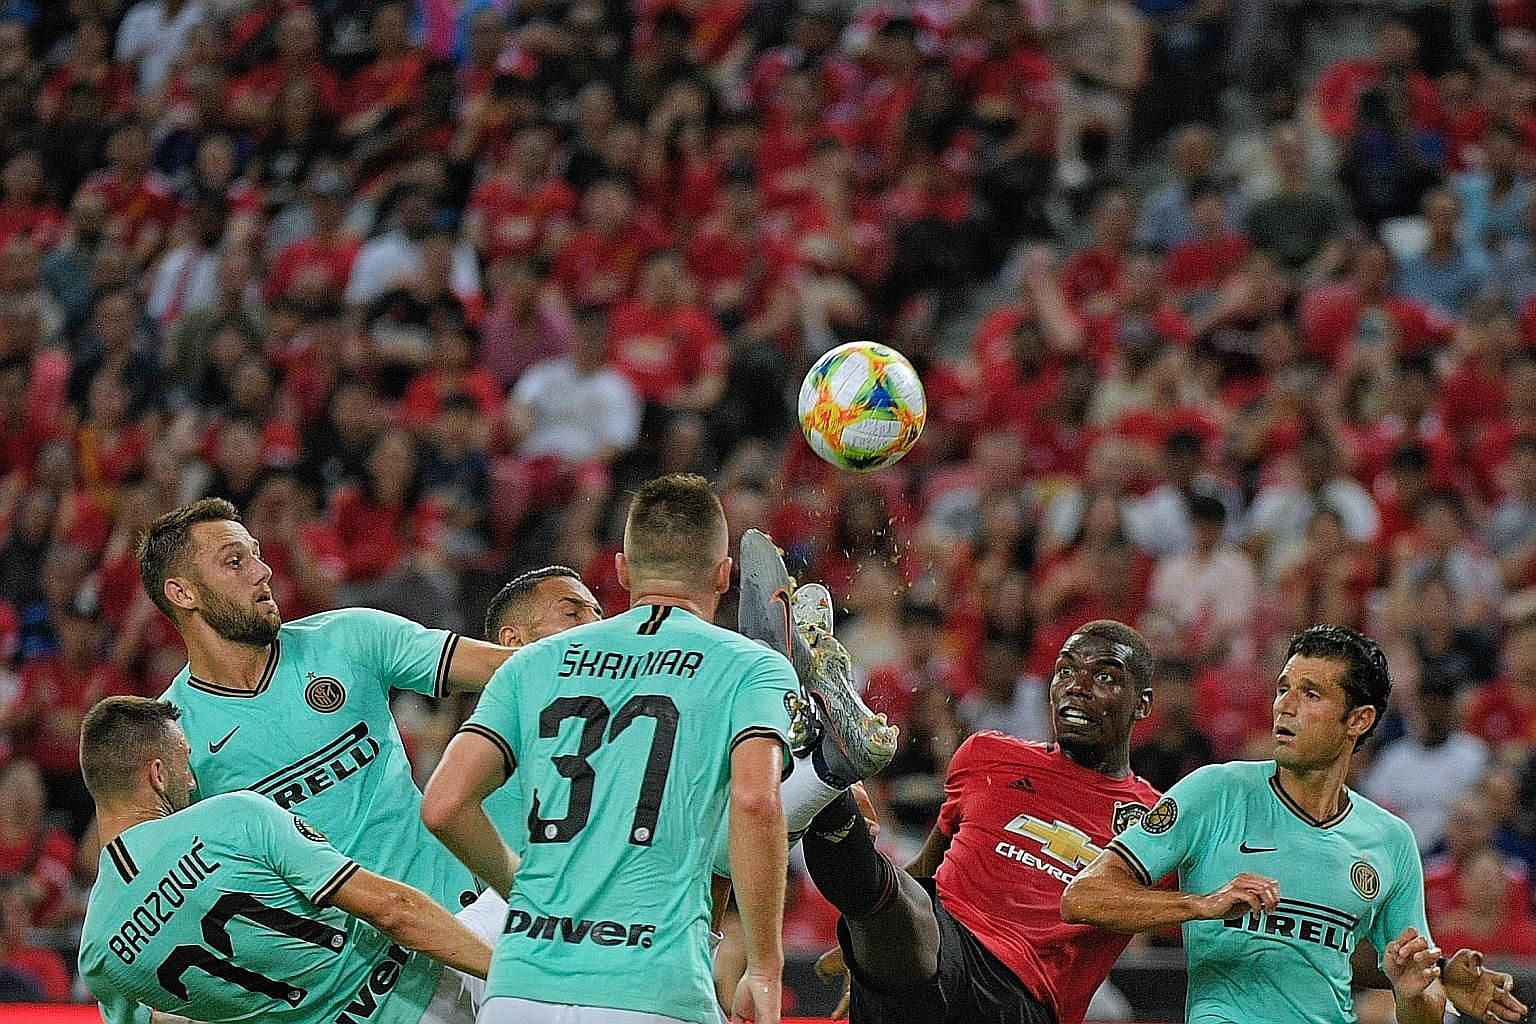 Midfielder Paul Pogba took on a host of Inter Milan players as Manchester United ran out 1-0 winners on Saturday, with the English side's supporters filling the National Stadium on their team's first visit to Singapore since 2001.